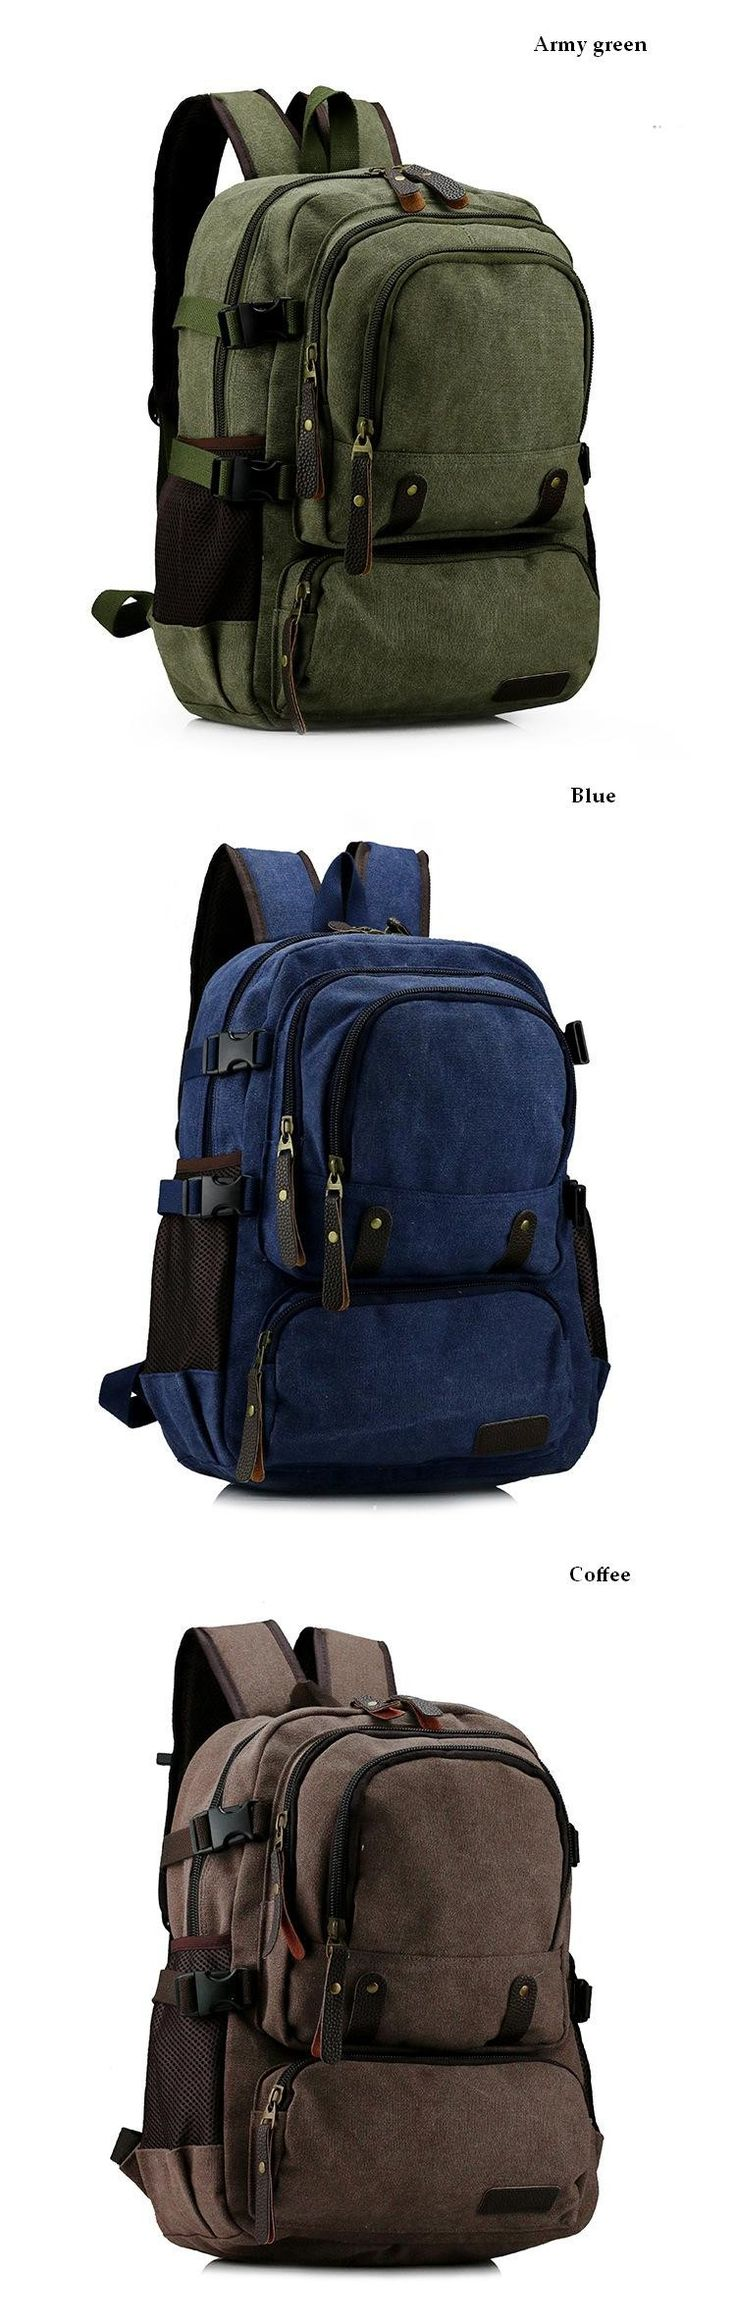 Vintage Style Large Capacity Backpacks Design School Backpacks Casual Canvas Travel Backpack for Men women LI-884  http://playertronics.com/products/vintage-style-large-capacity-backpacks-design-school-backpacks-casual-canvas-travel-backpack-for-men-women-li-884/